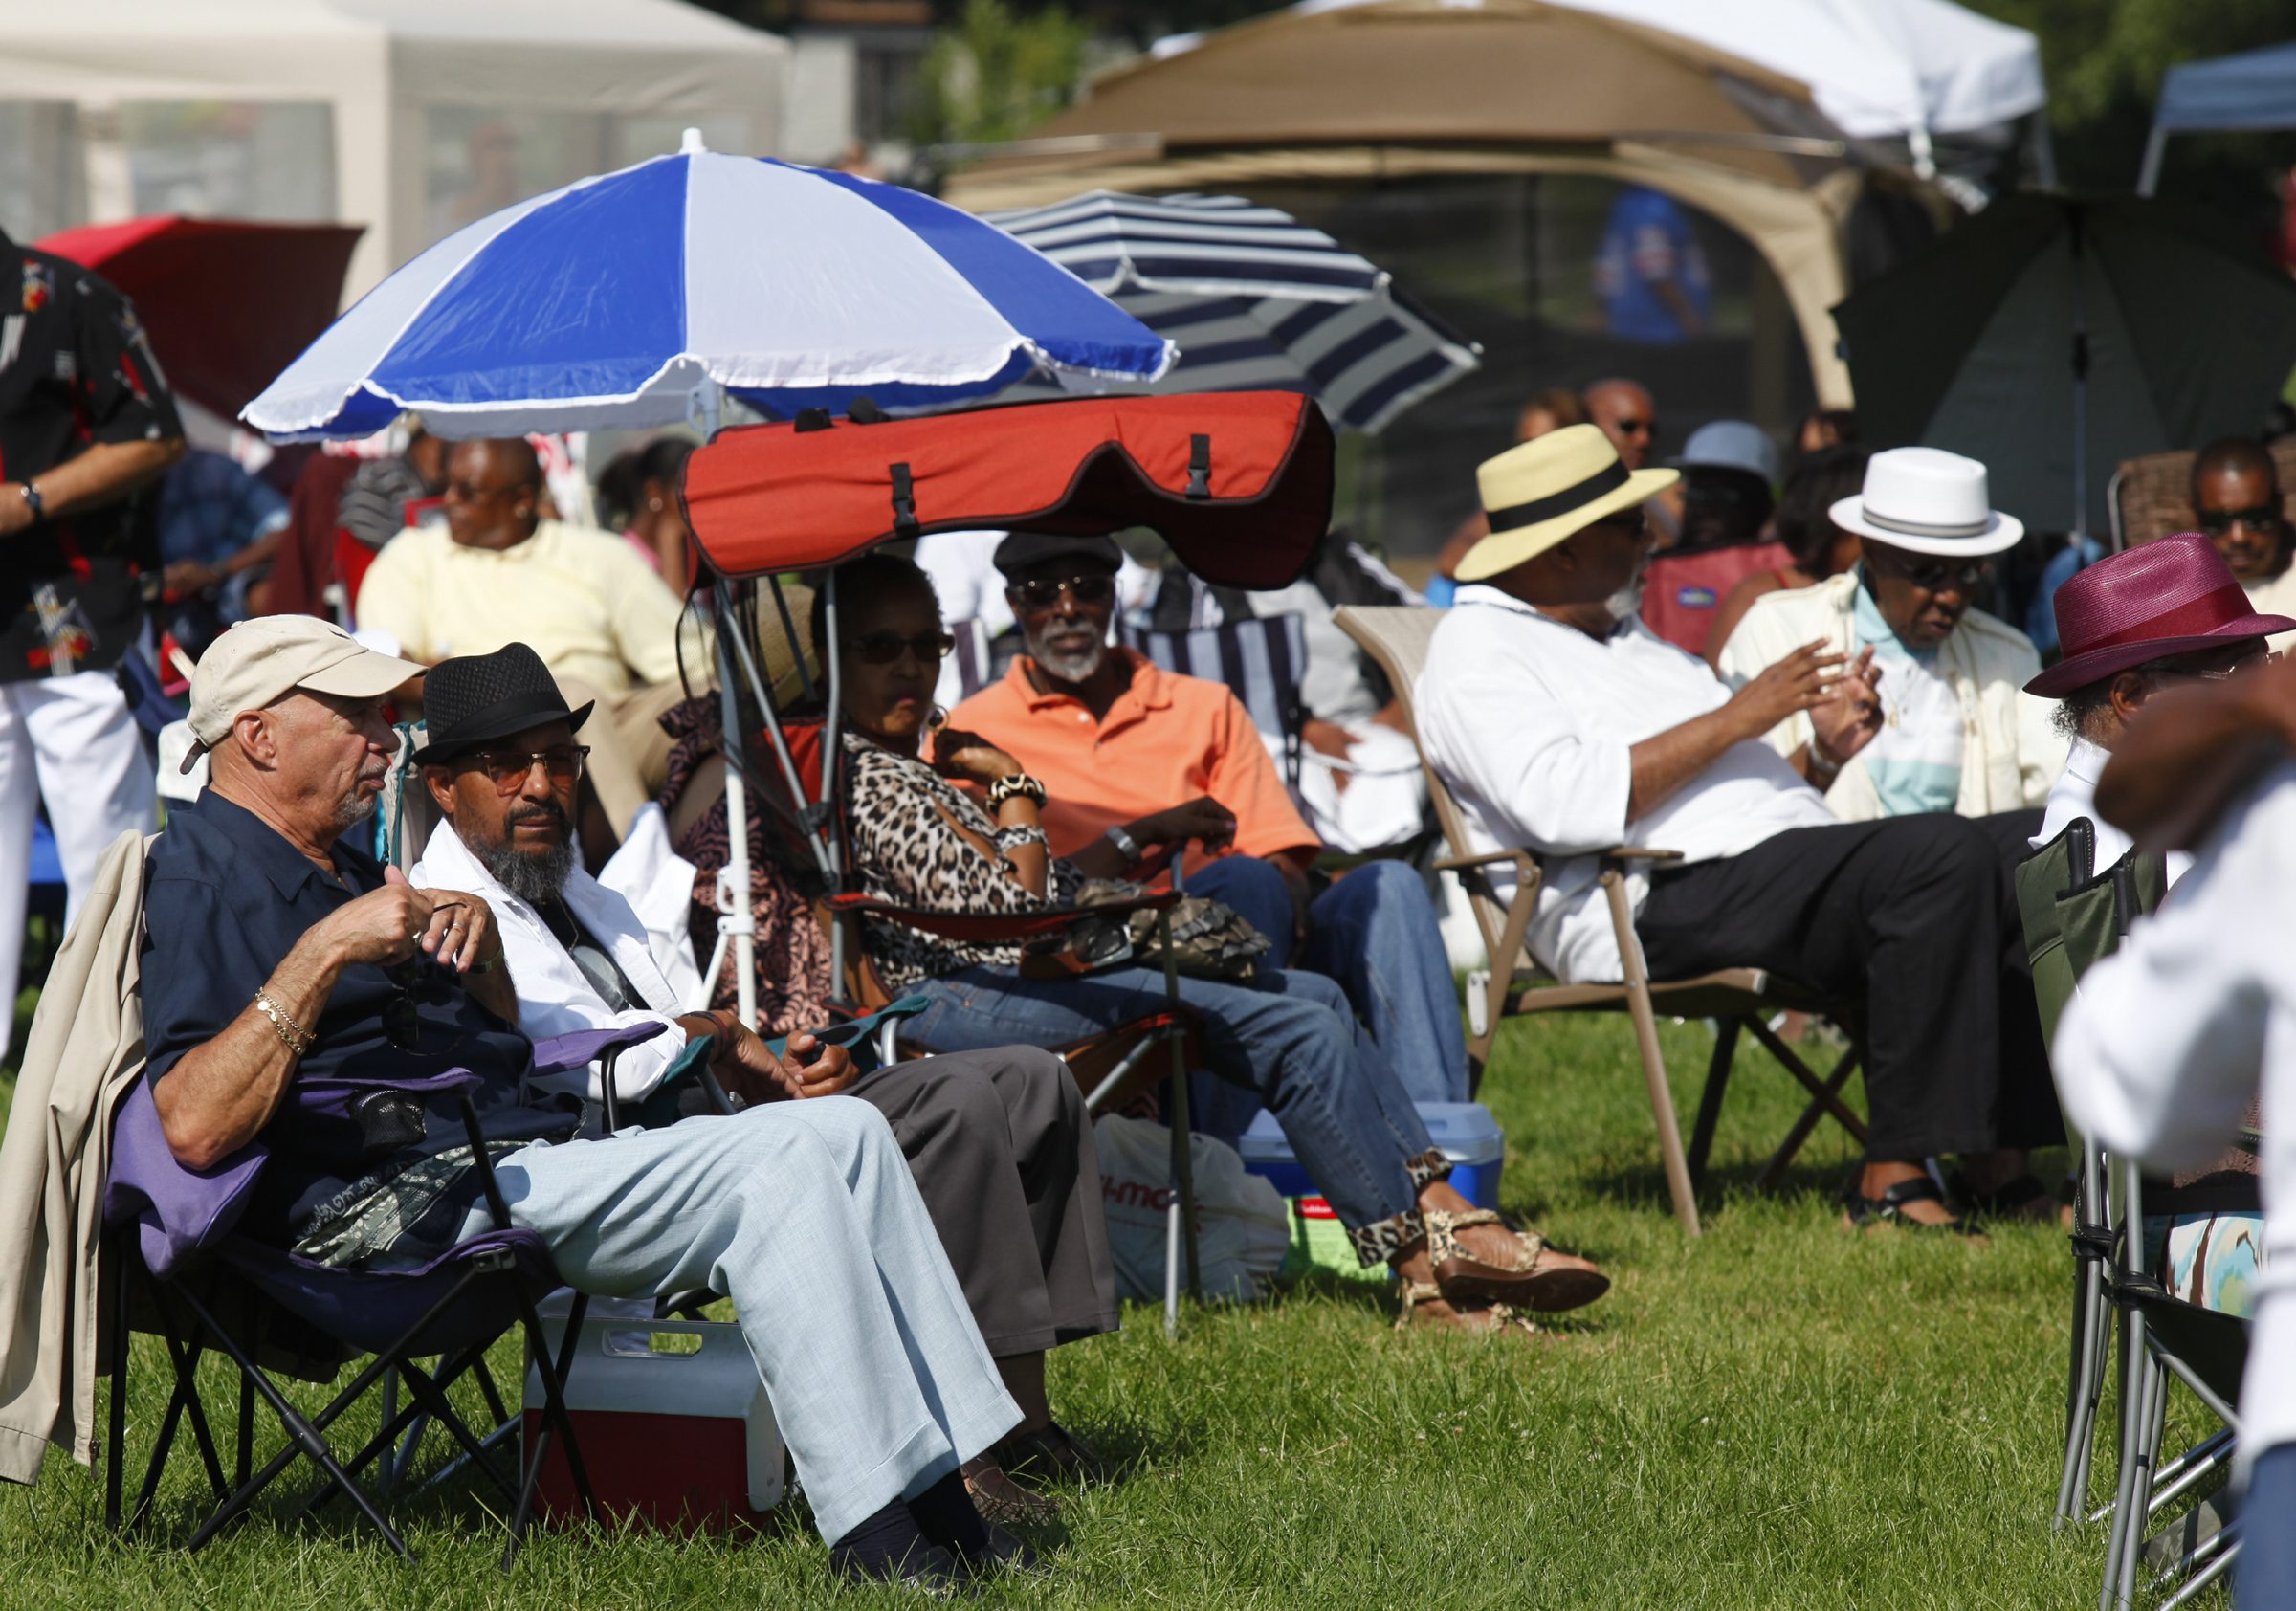 People listen to the the Sabu Adeyola band at the  annual Pine Grill Reunion at Martin Luther King Park, on Sunday, Aug. 11, 2013. Harry Scull Jr. / Buffalo News}